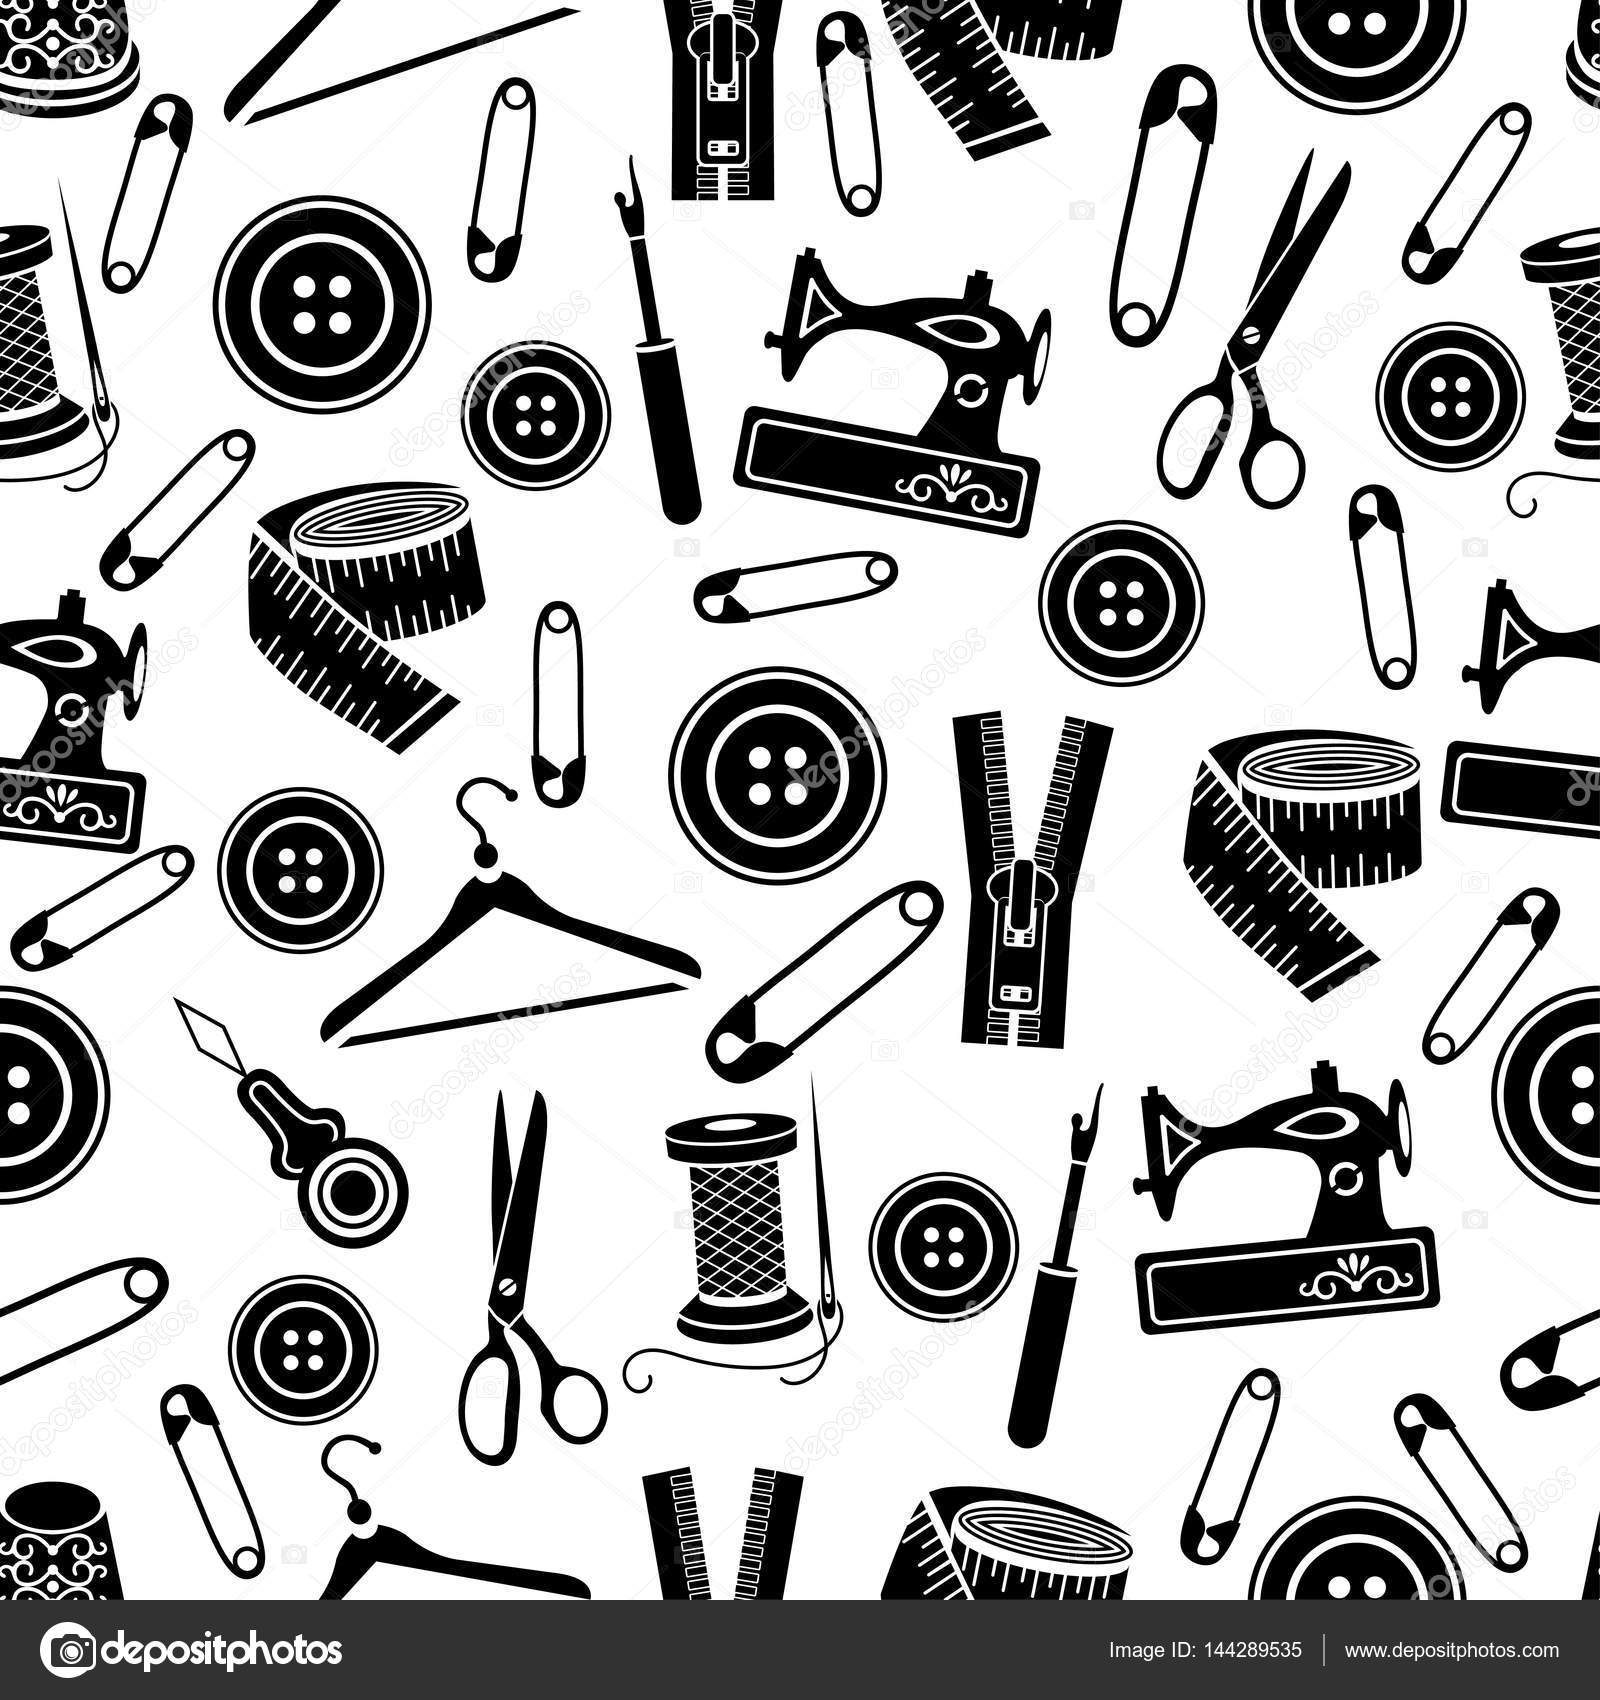 Sewing tools seamless pattern vector background black for Decoration et accessoires